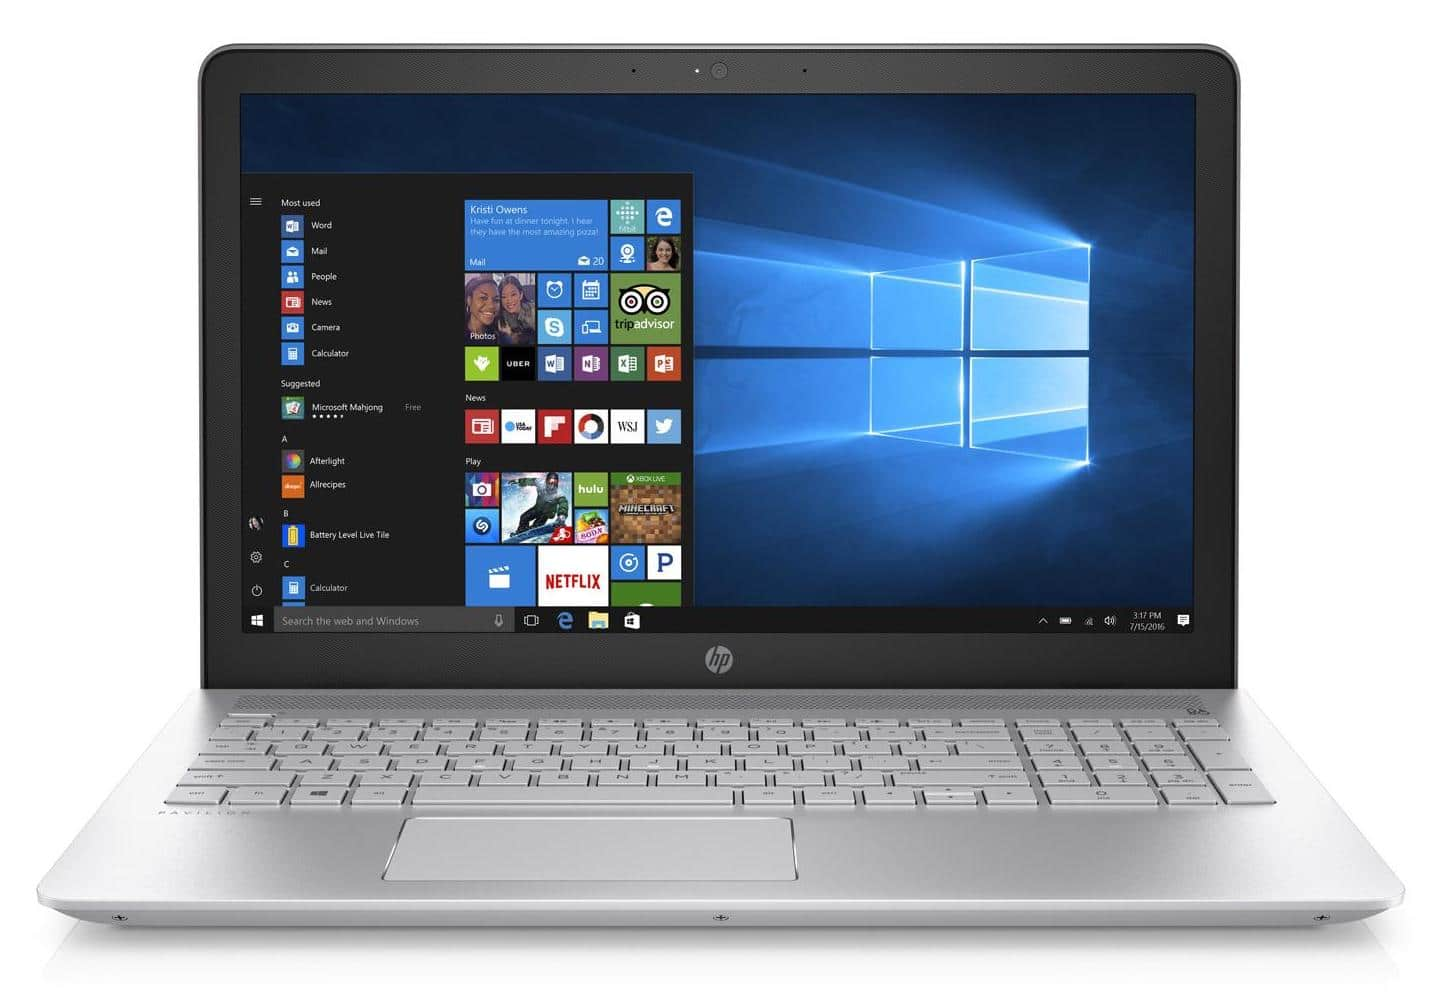 HP Pavilion 15-cc520nf, ultrabook 15 pouces SSD512 Full i7 940MX à 749€